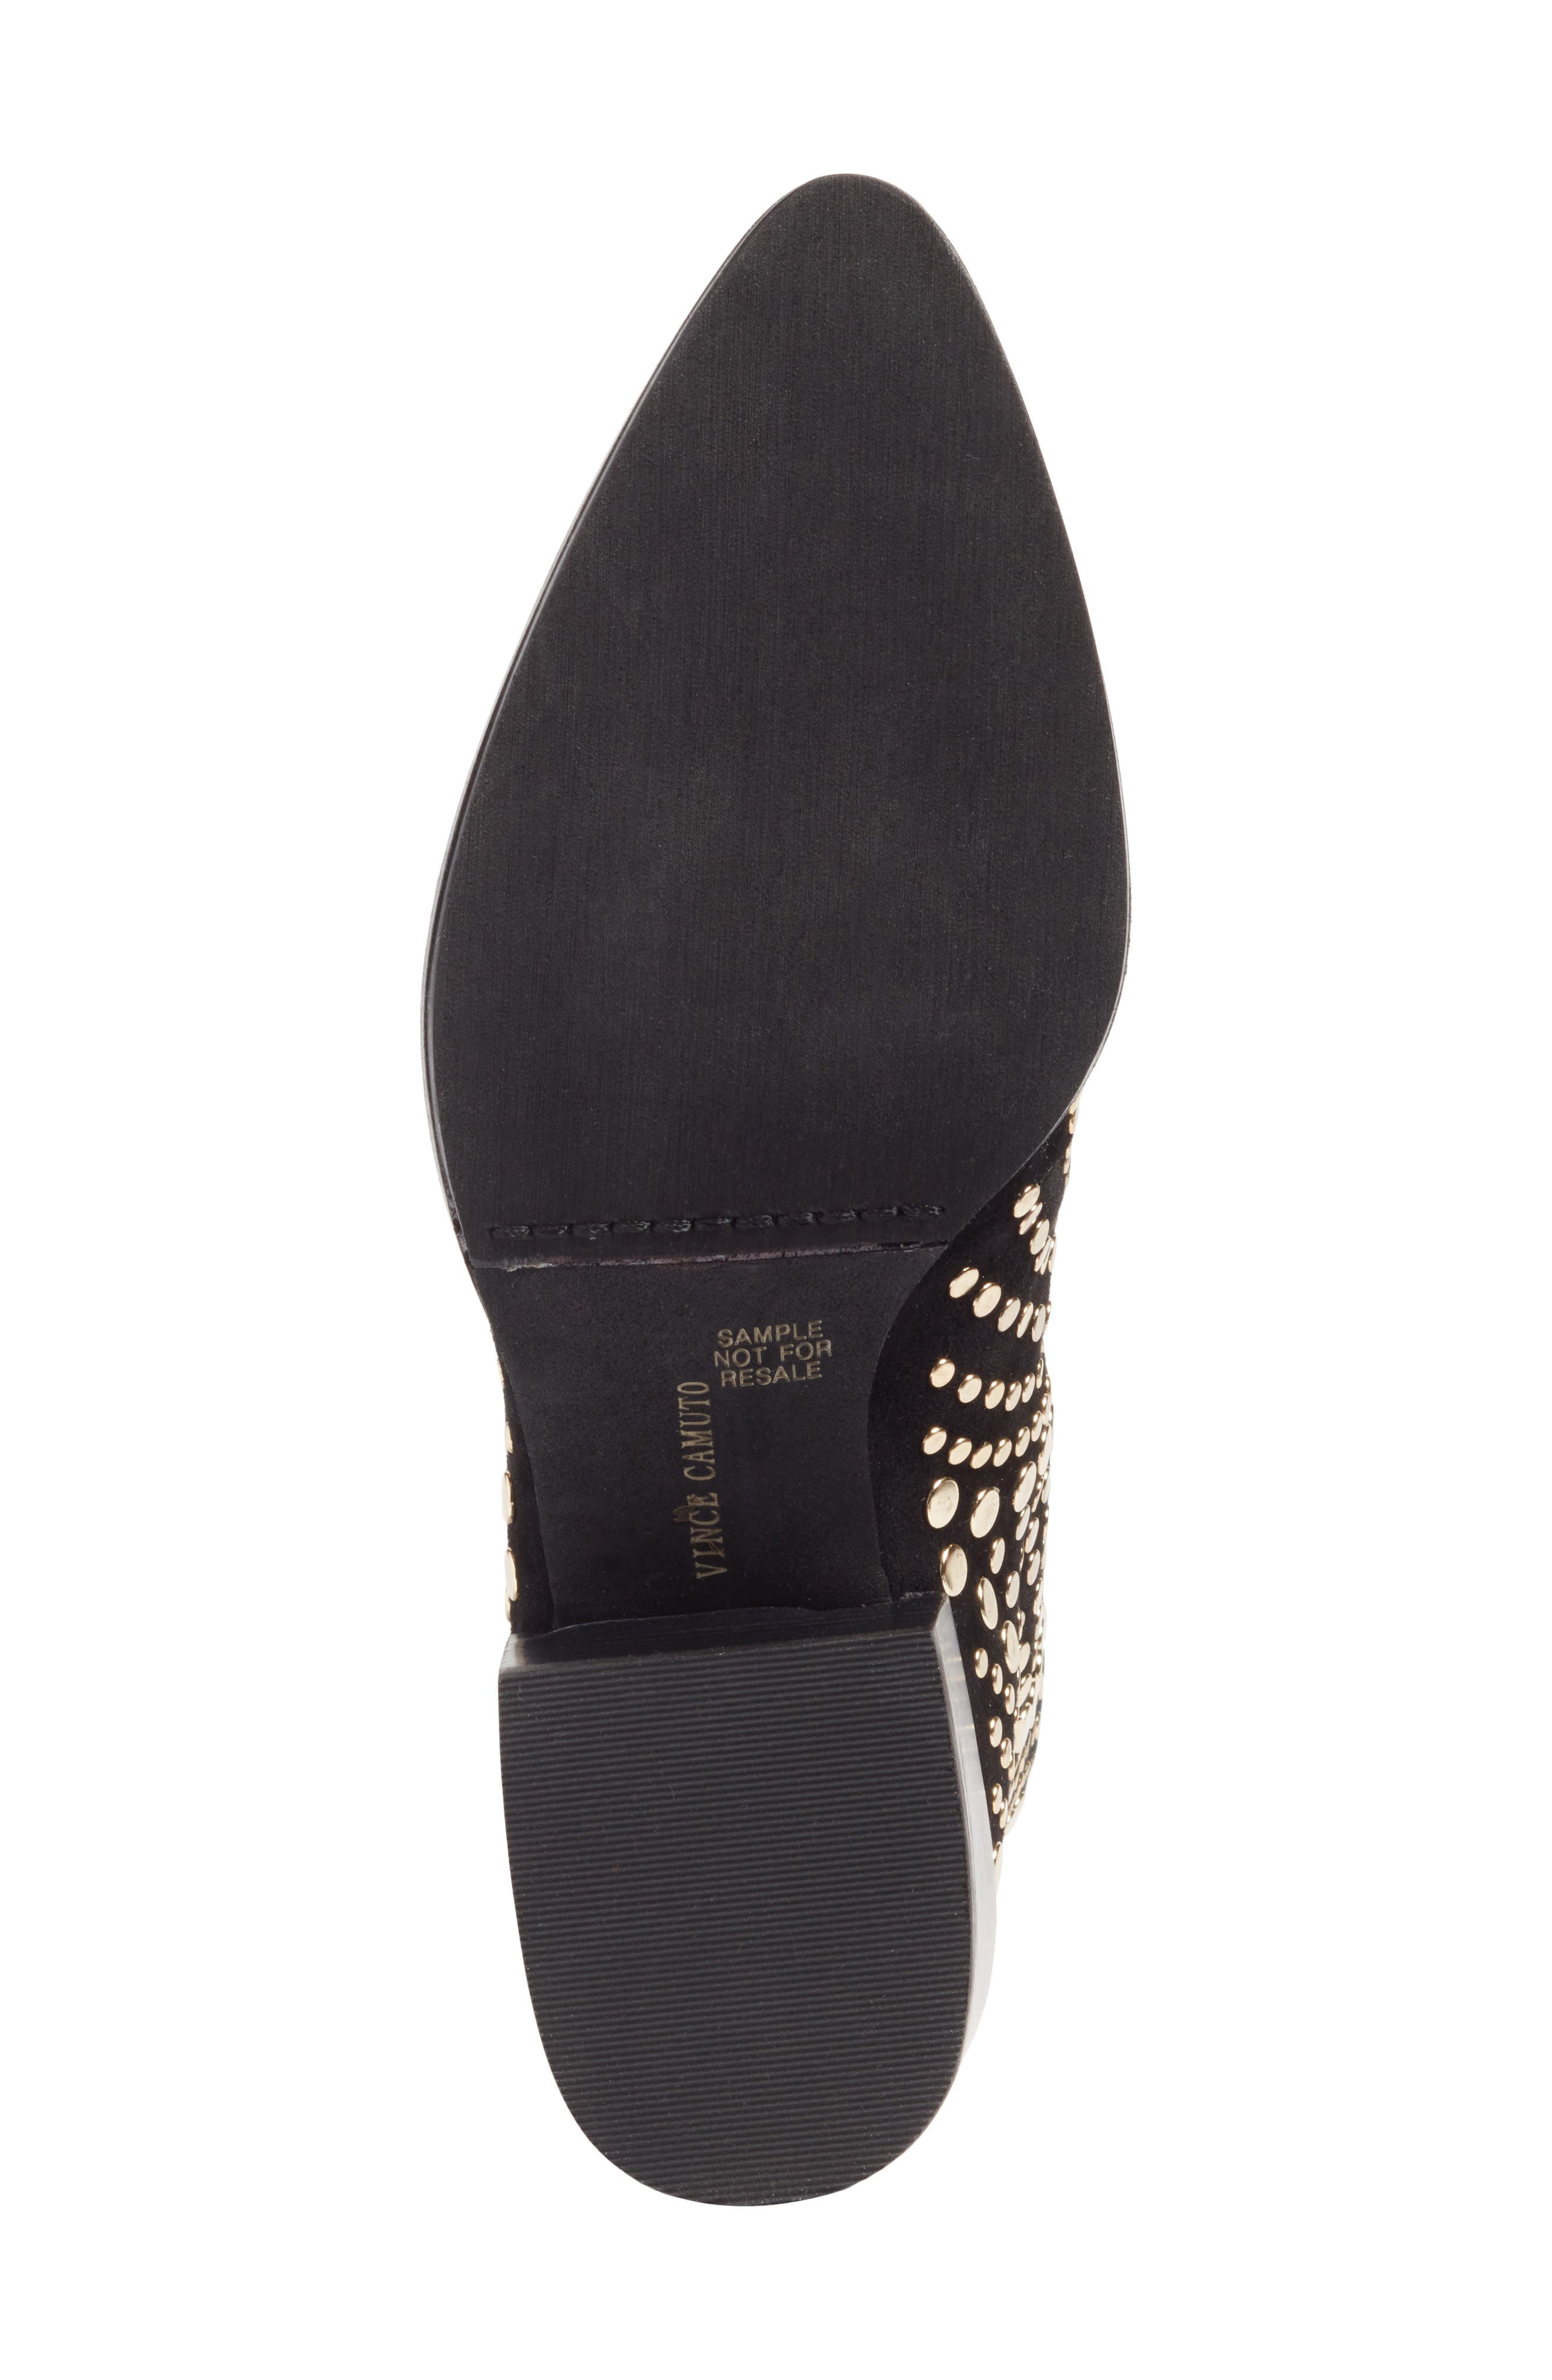 Edenny Studded Pointy Toe Bootie,                             Alternate thumbnail 7, color,                             Black Suede